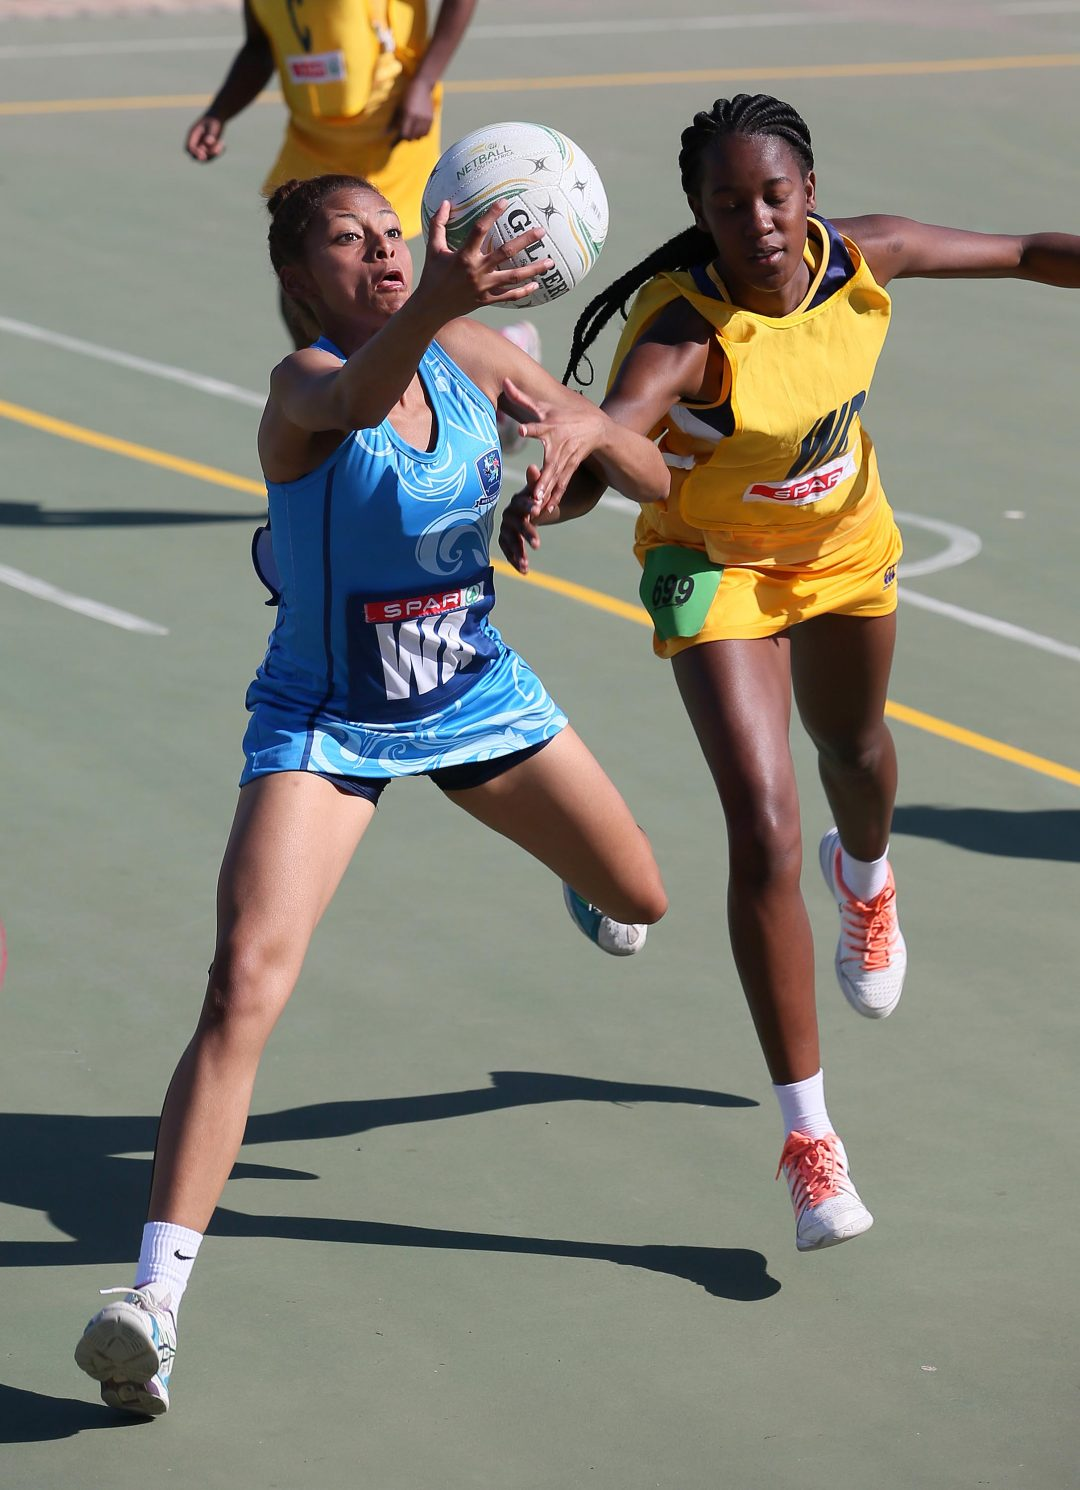 IN-FORM WESTERN CAPE WIN SPAR NATIONAL NETBALL CHAMPIONSHIPS